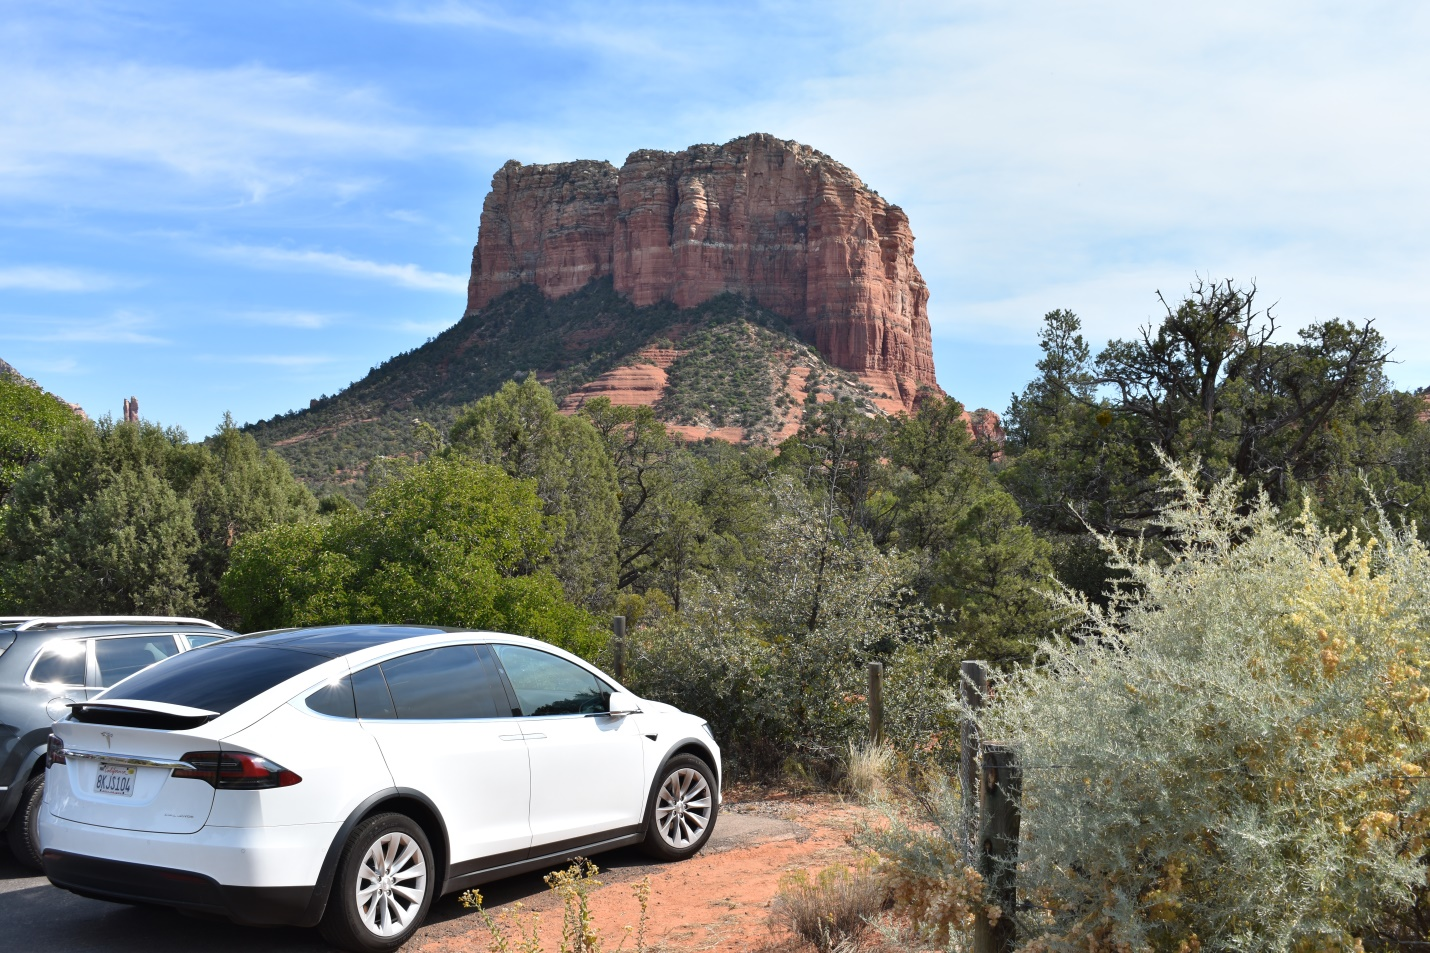 Ellie parked in front of Bell Rock in Sedona, AZ